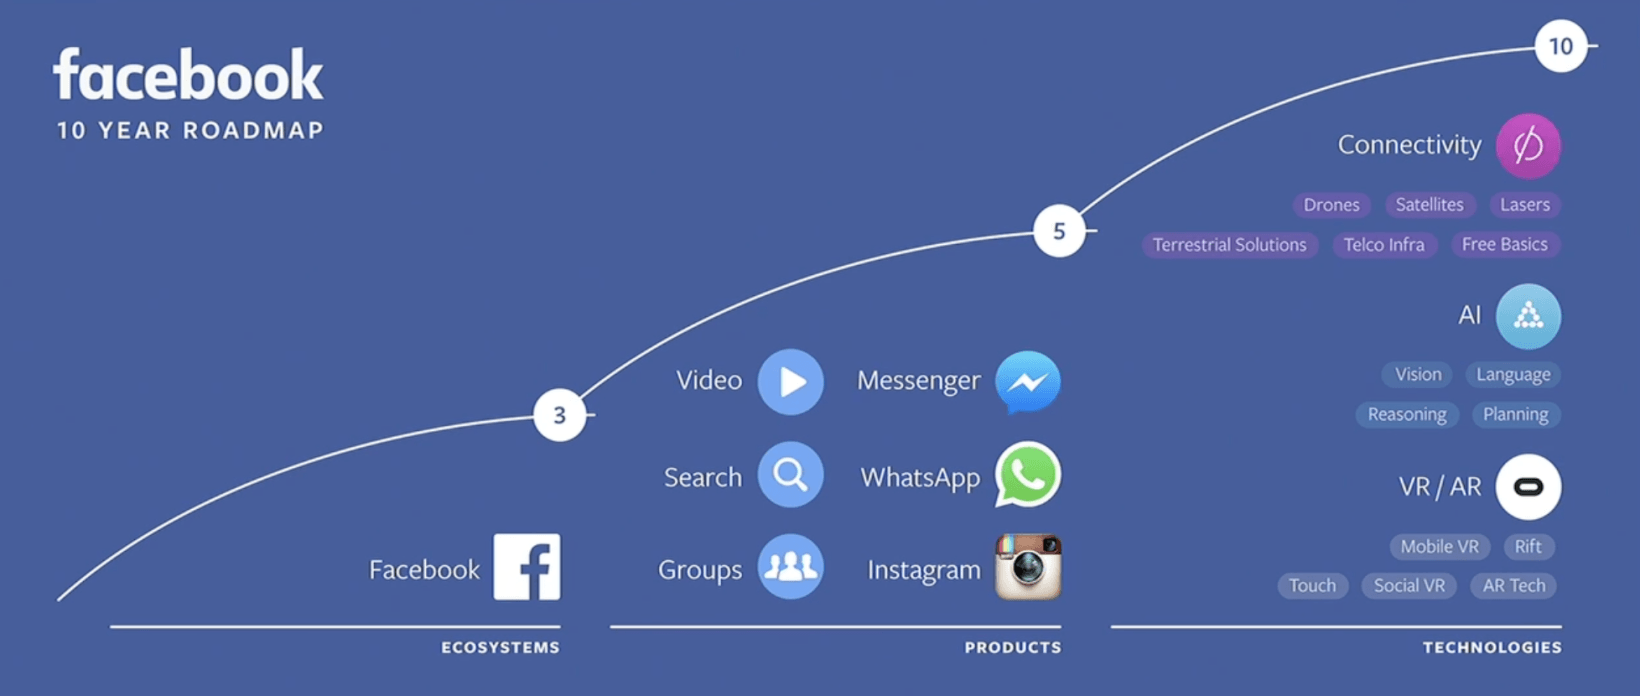 fb roadmap